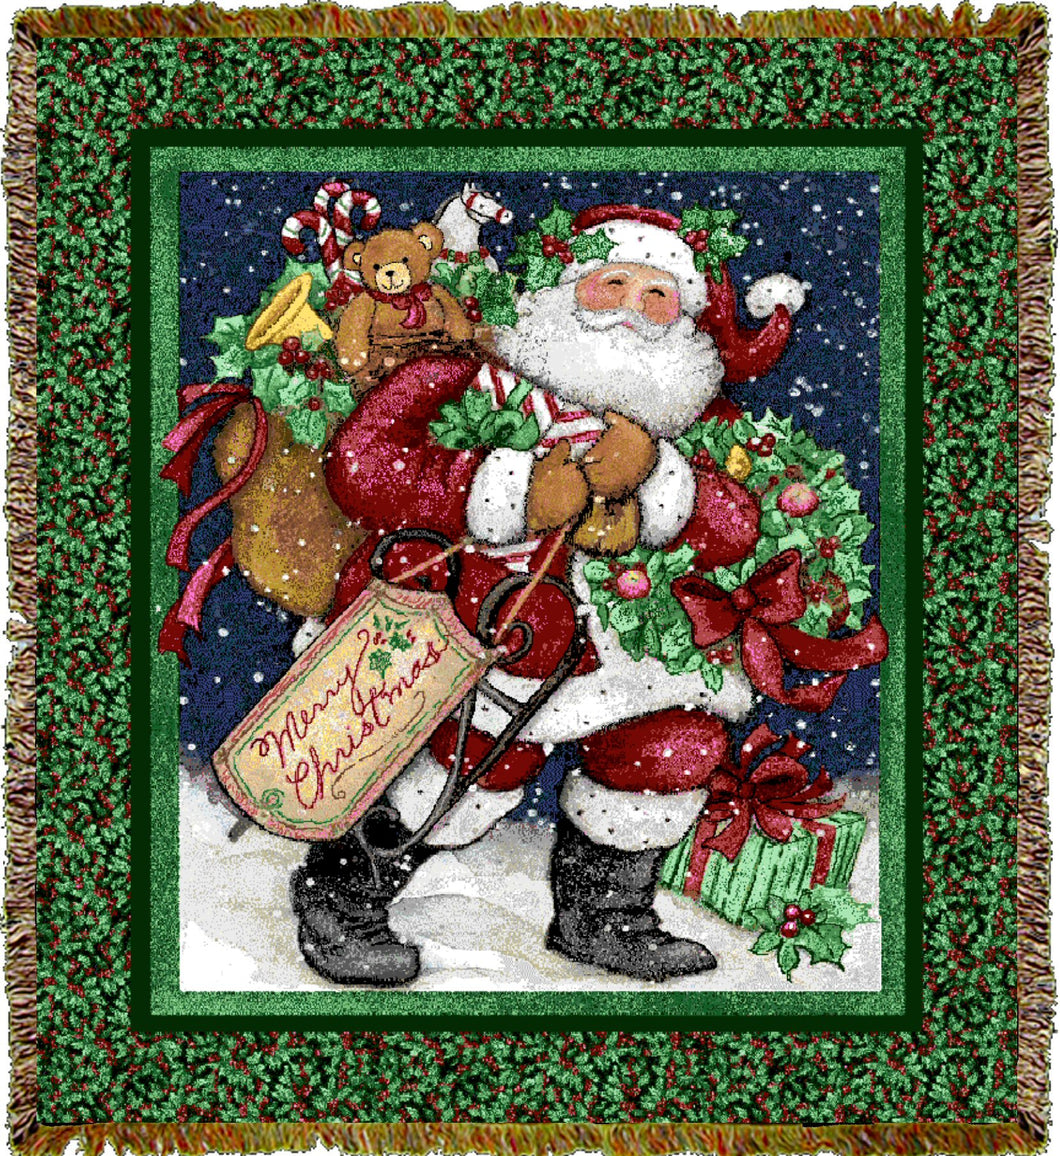 Santa with Gifts Throw Blanket